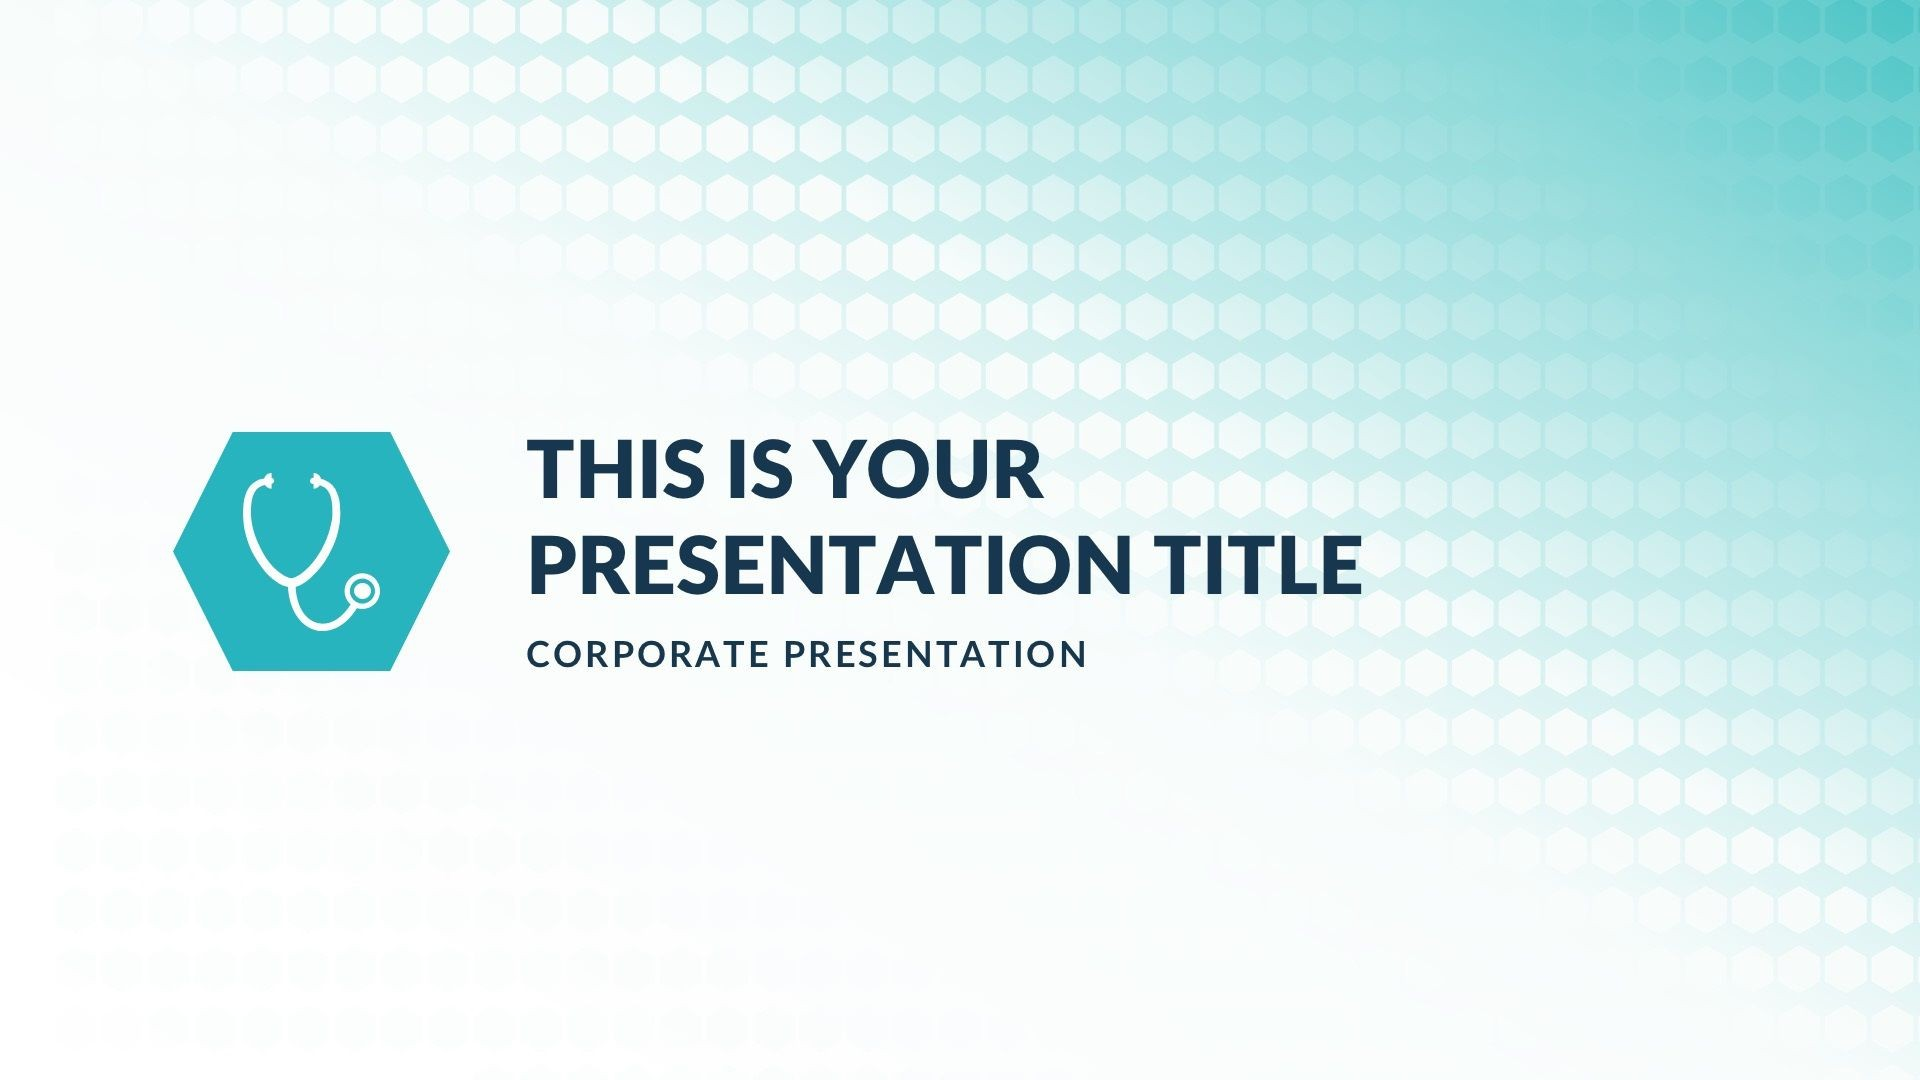 002 Frightening Free Health Powerpoint Template High Resolution  Templates Related Download Healthcare Animated1920